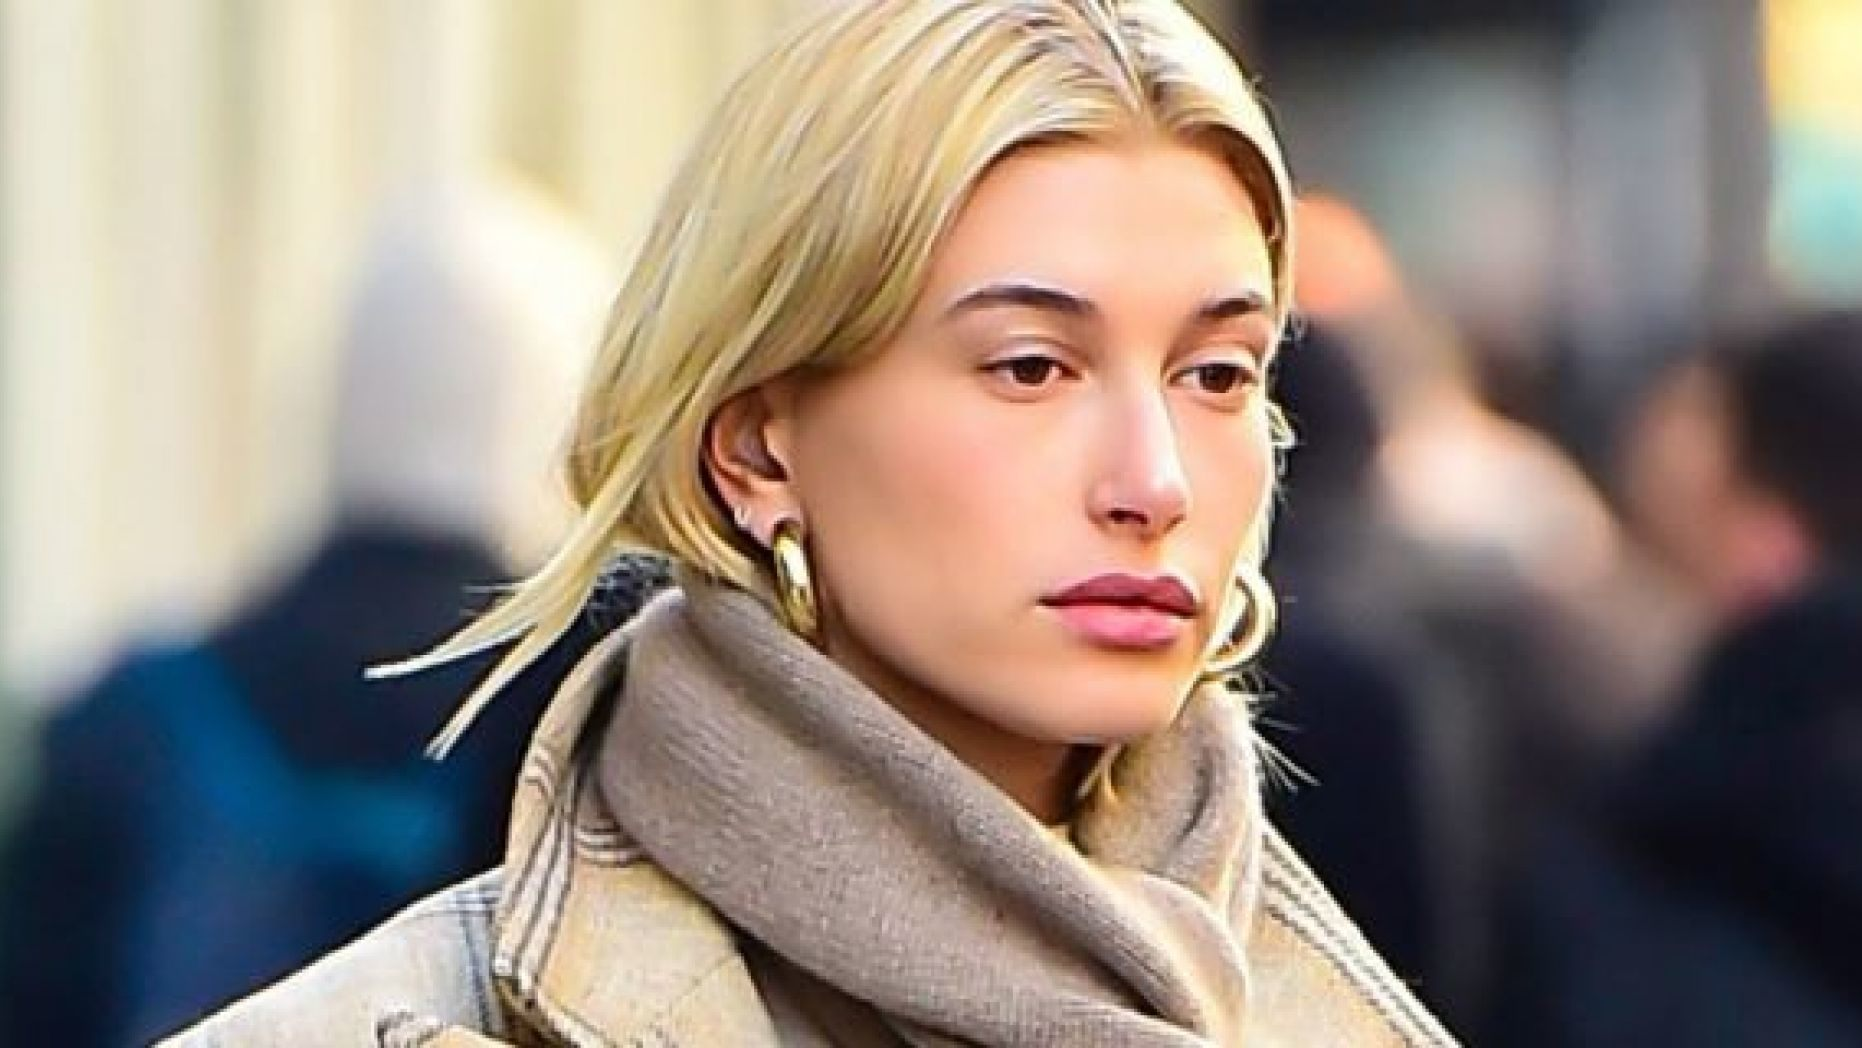 Hailey Baldwin 'Frustrated' by Husband Justin Bieber's Fans